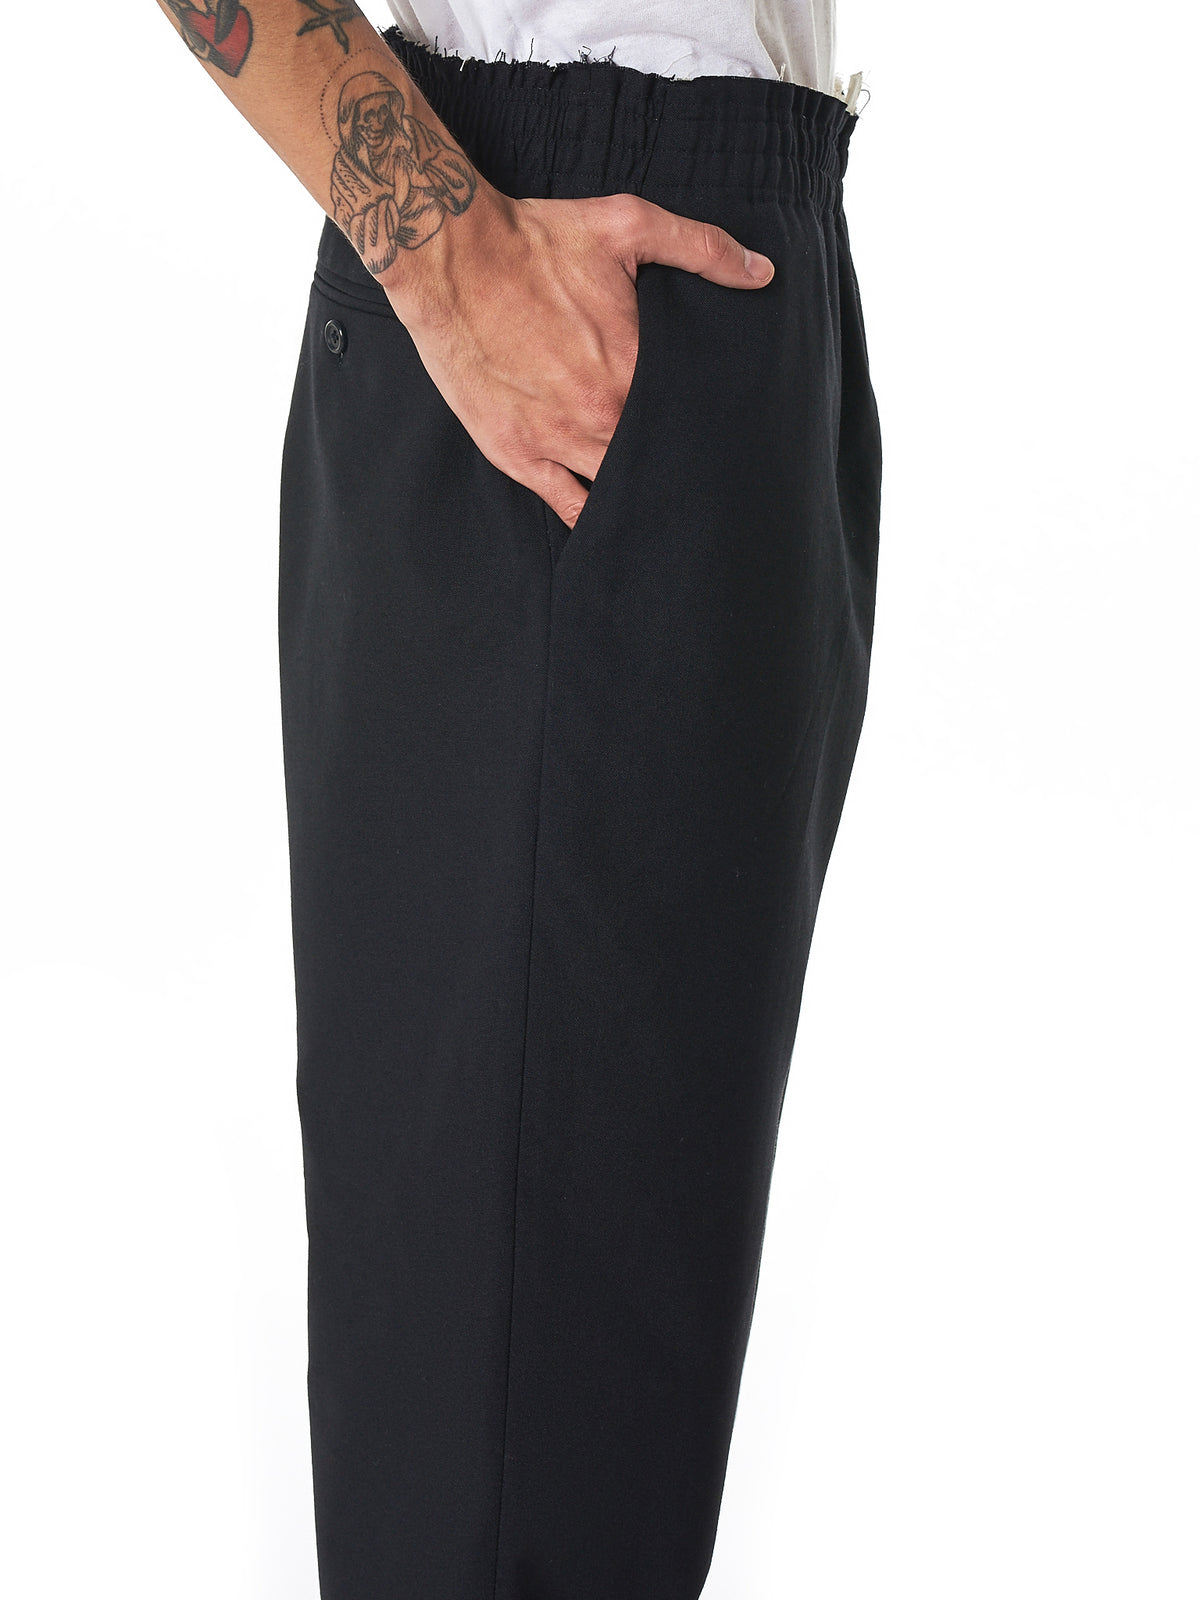 Camiel Fortgens Trousers - Hlorenzo Detail 2